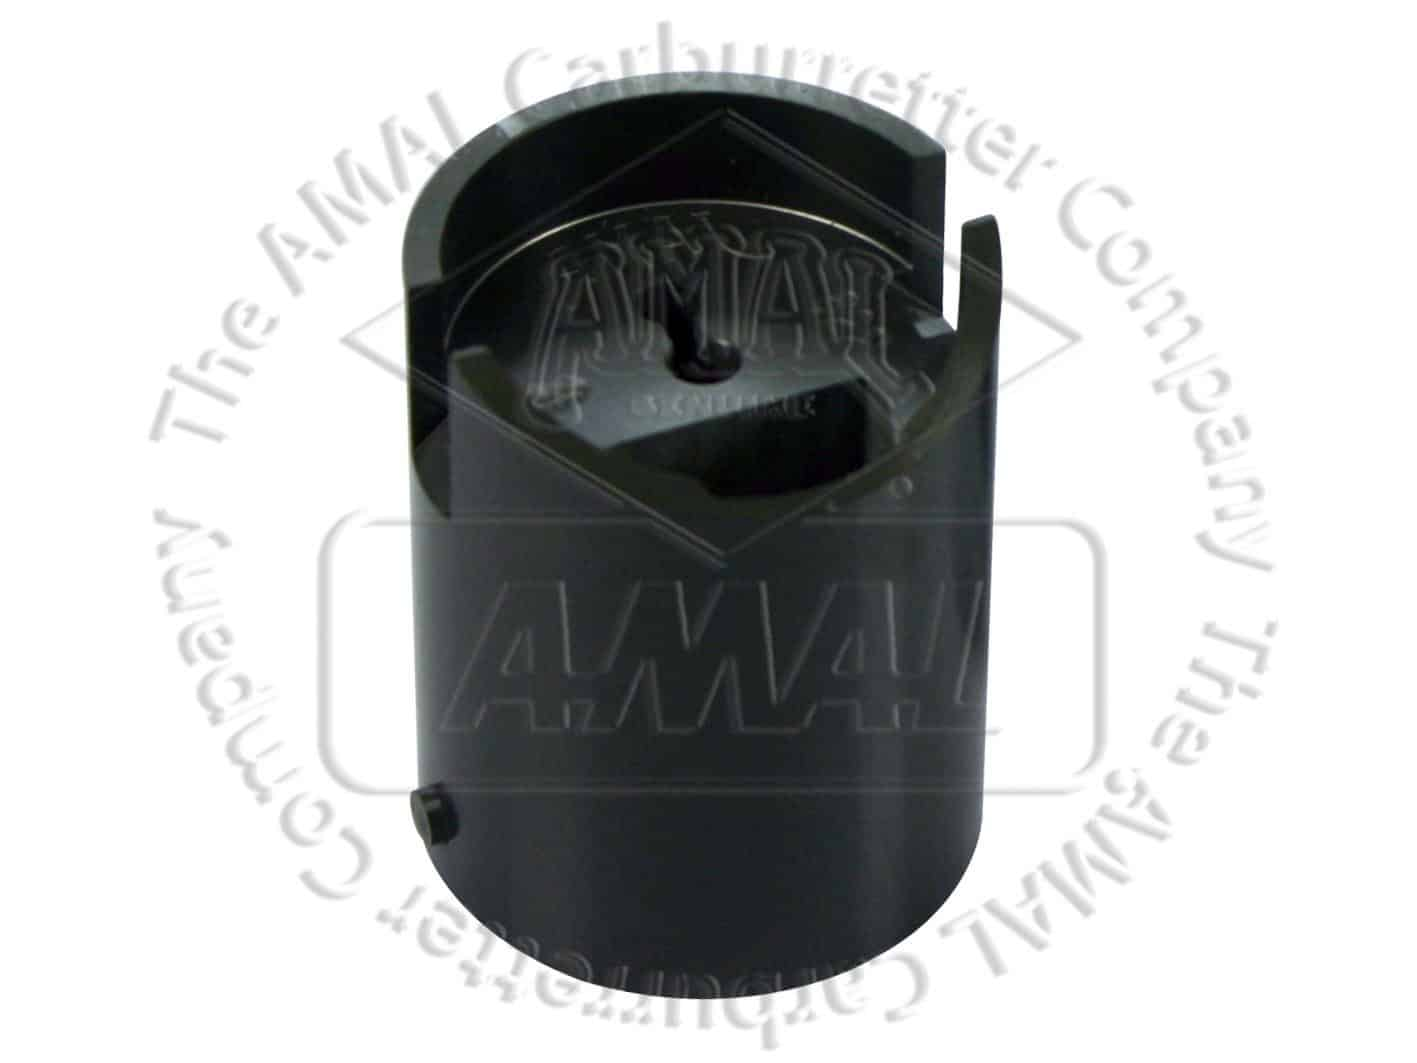 Throttle Slide No 4 HA, 900 Series (Amal) -